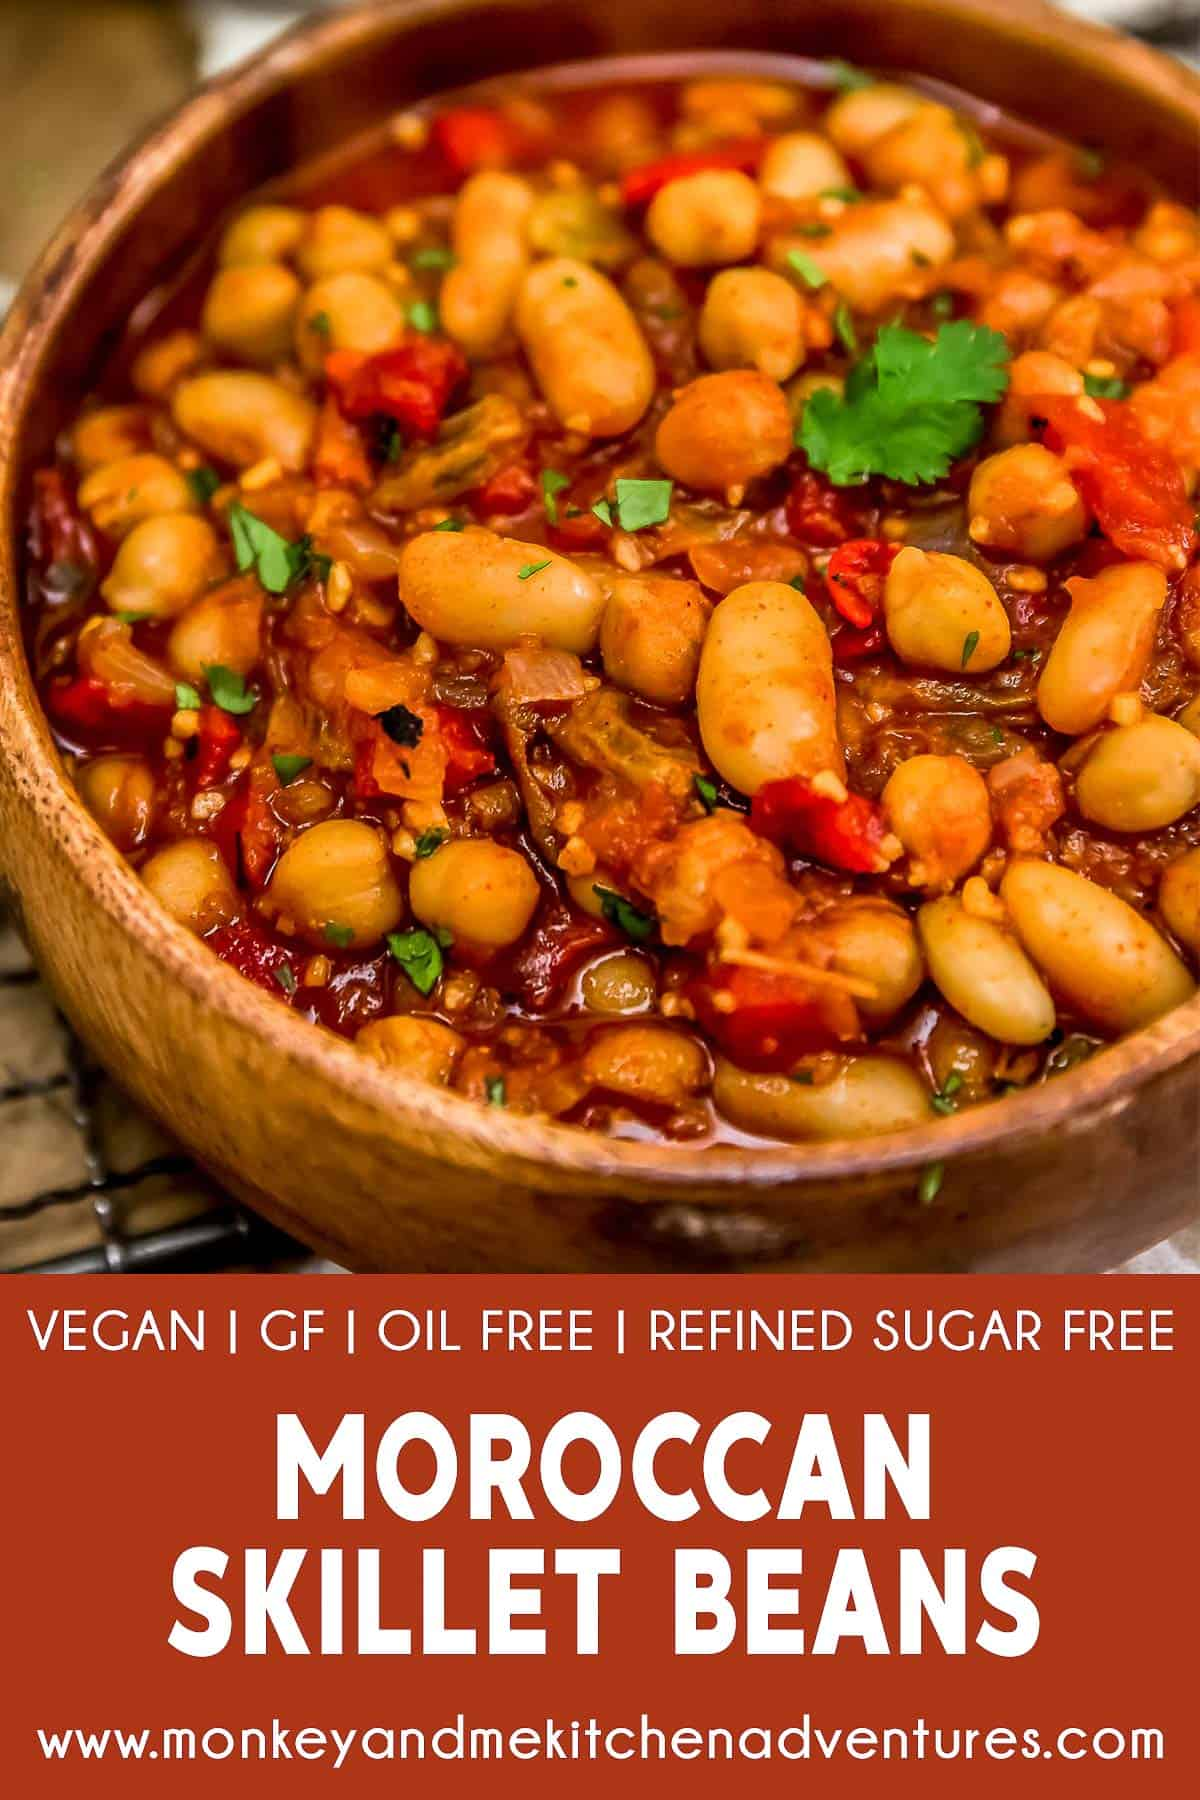 Moroccan Skillet Beans with text description